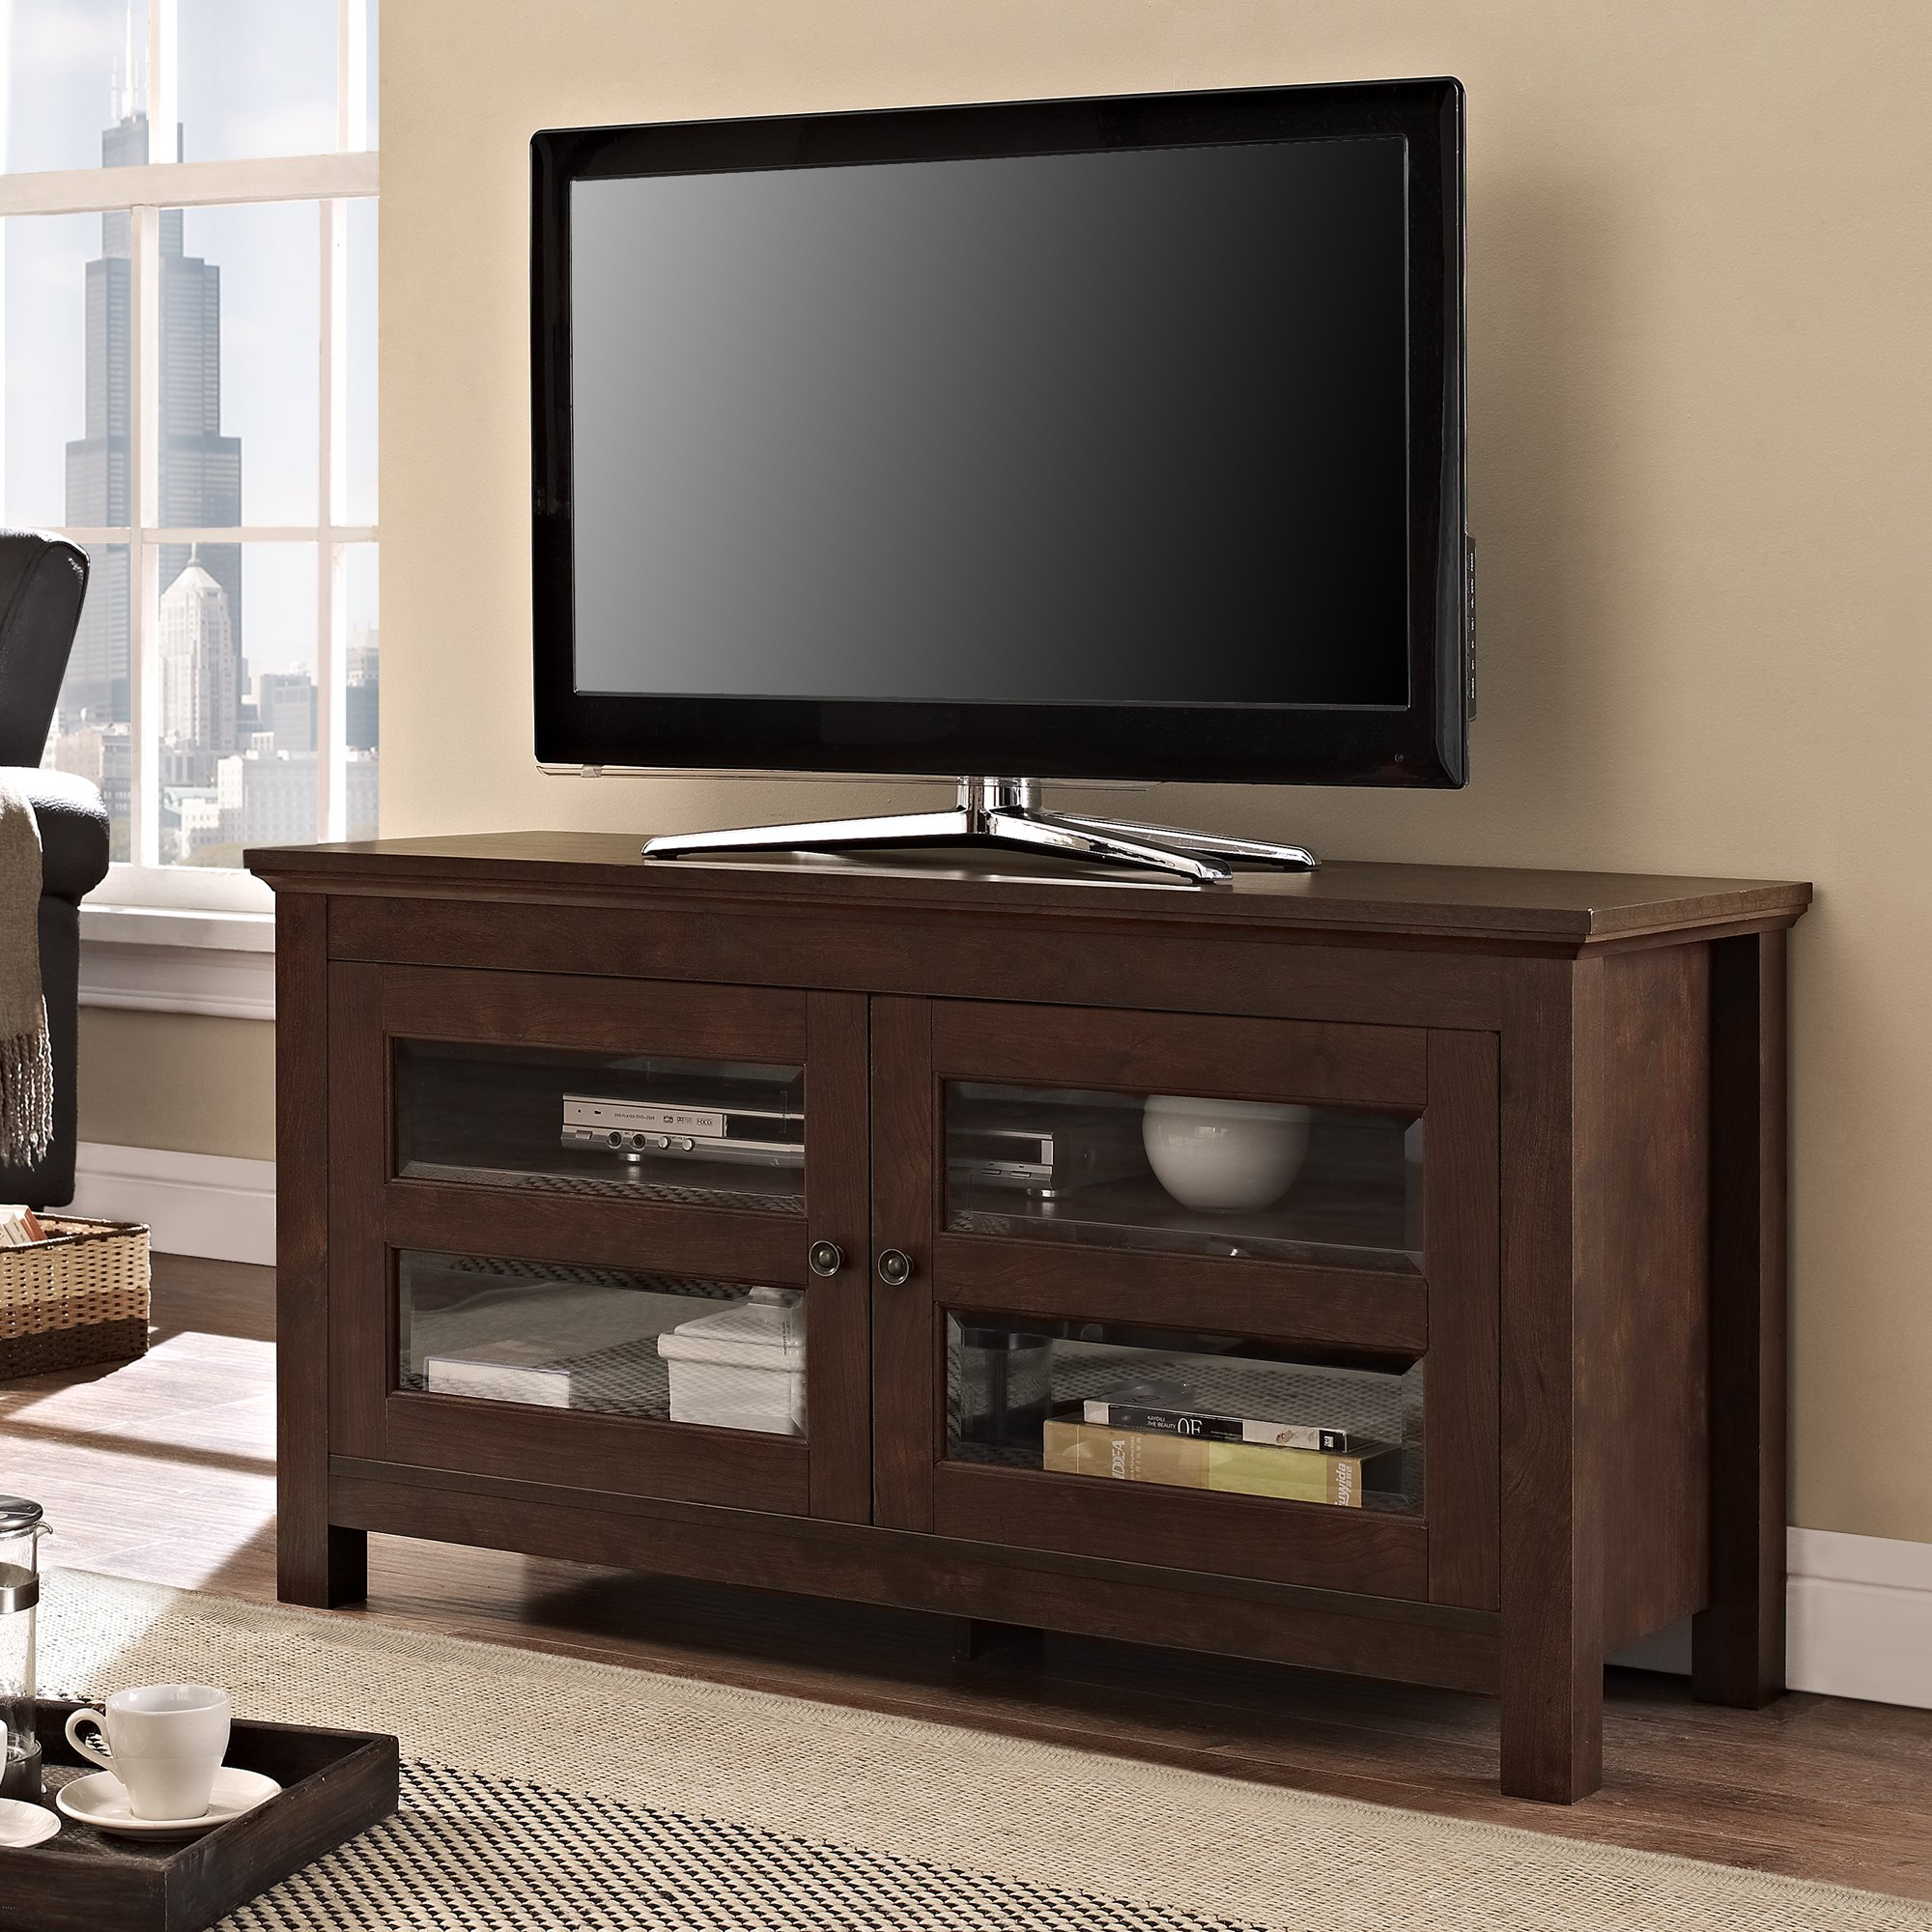 Walker Edison 44'' Coronado TV Stand Console, Brown by MidWest Homes for Pets